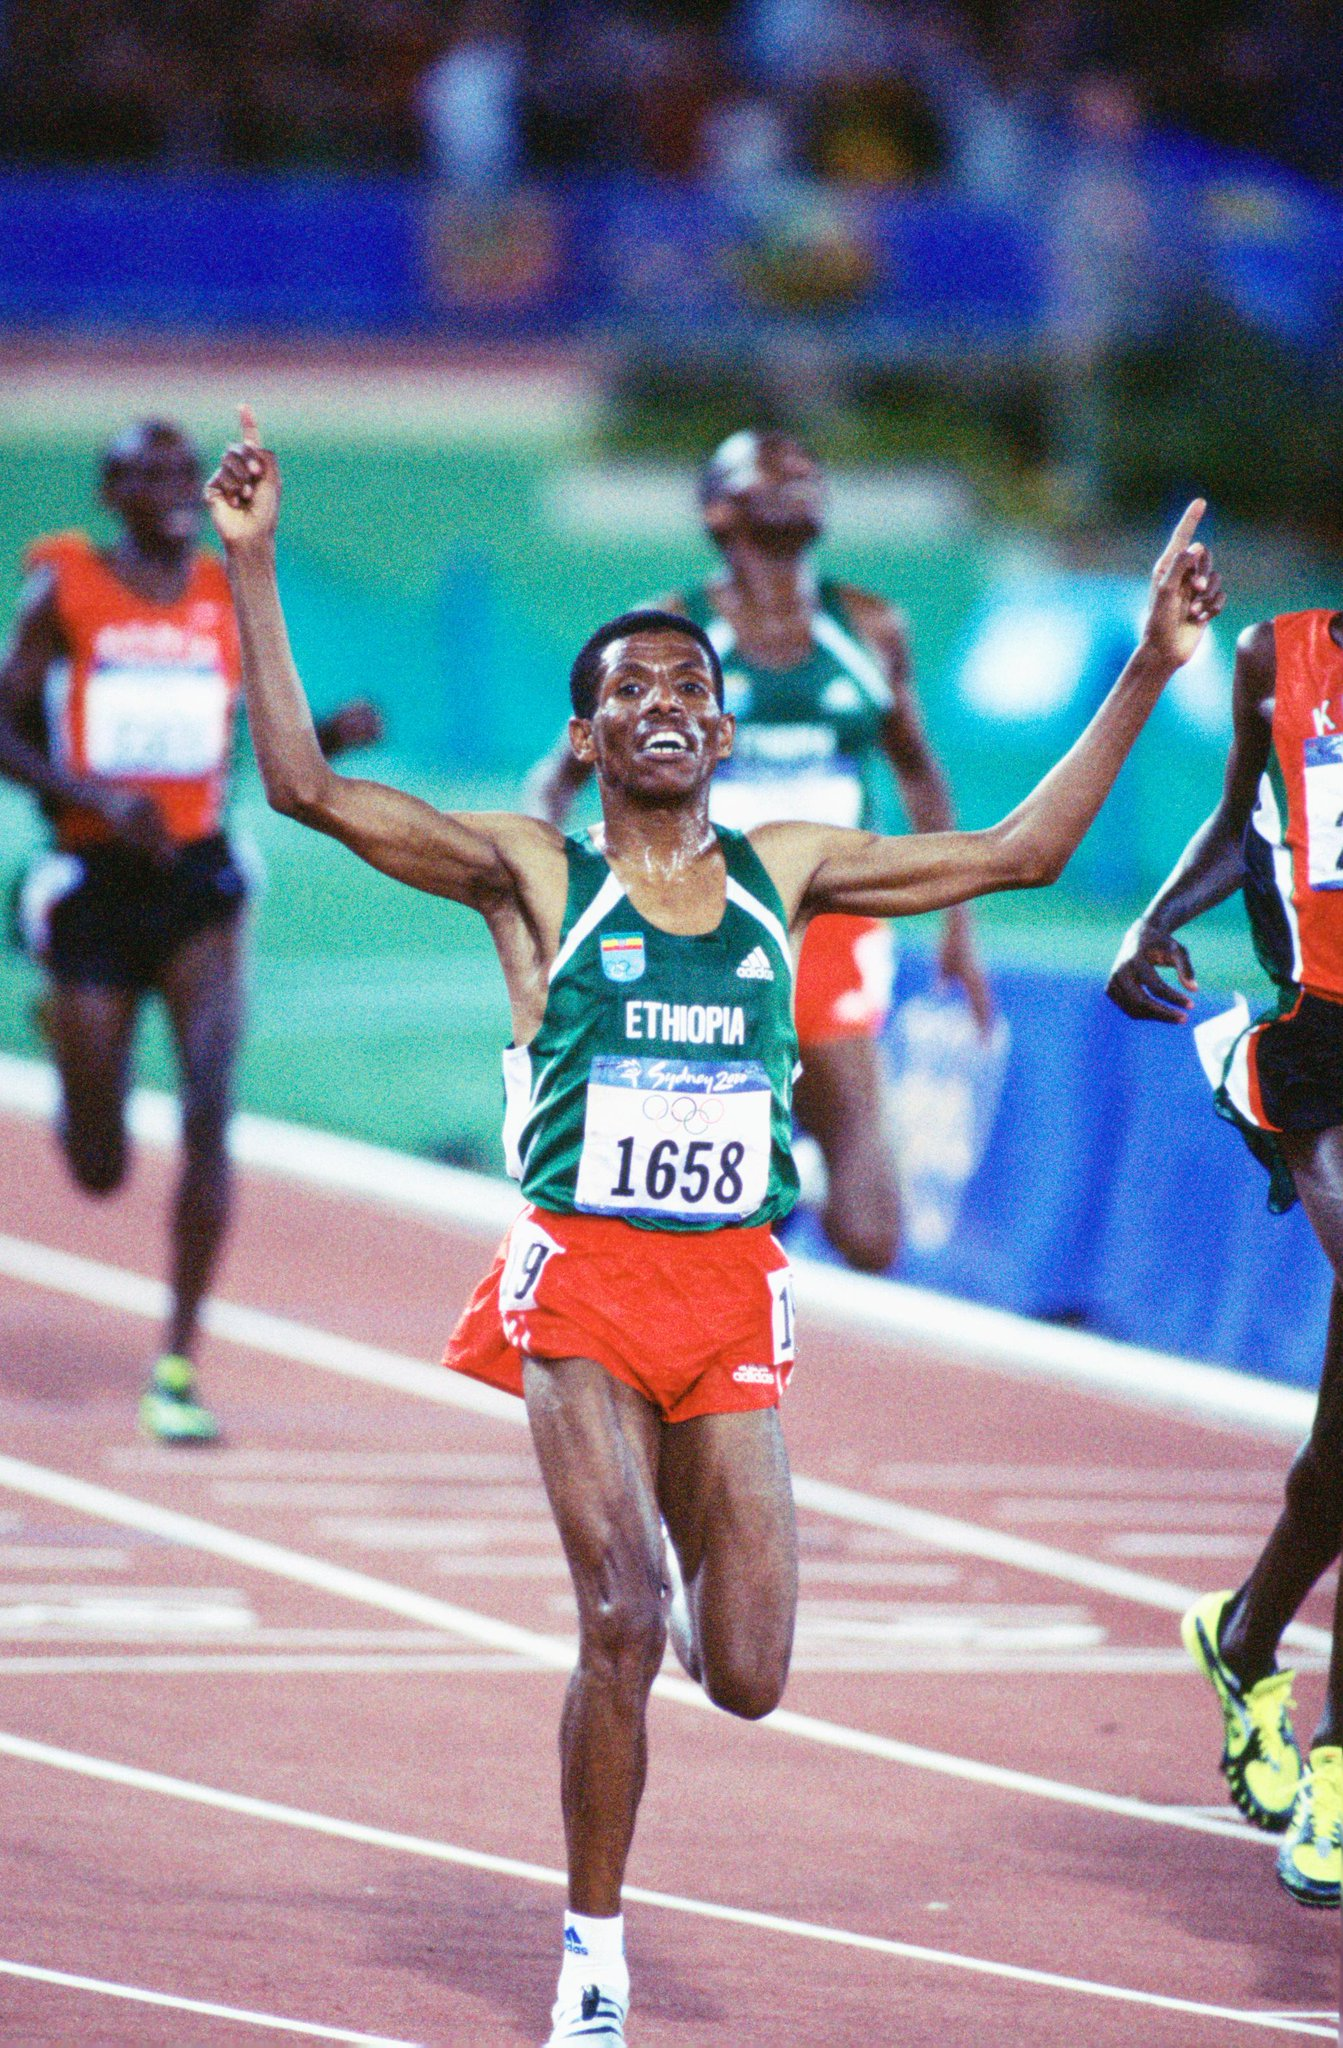 Age for me is just a number - Haile Gebreselassie. Happy birthday to the two time Olympic Champion! http://t.co/Uk6MlVQnnc